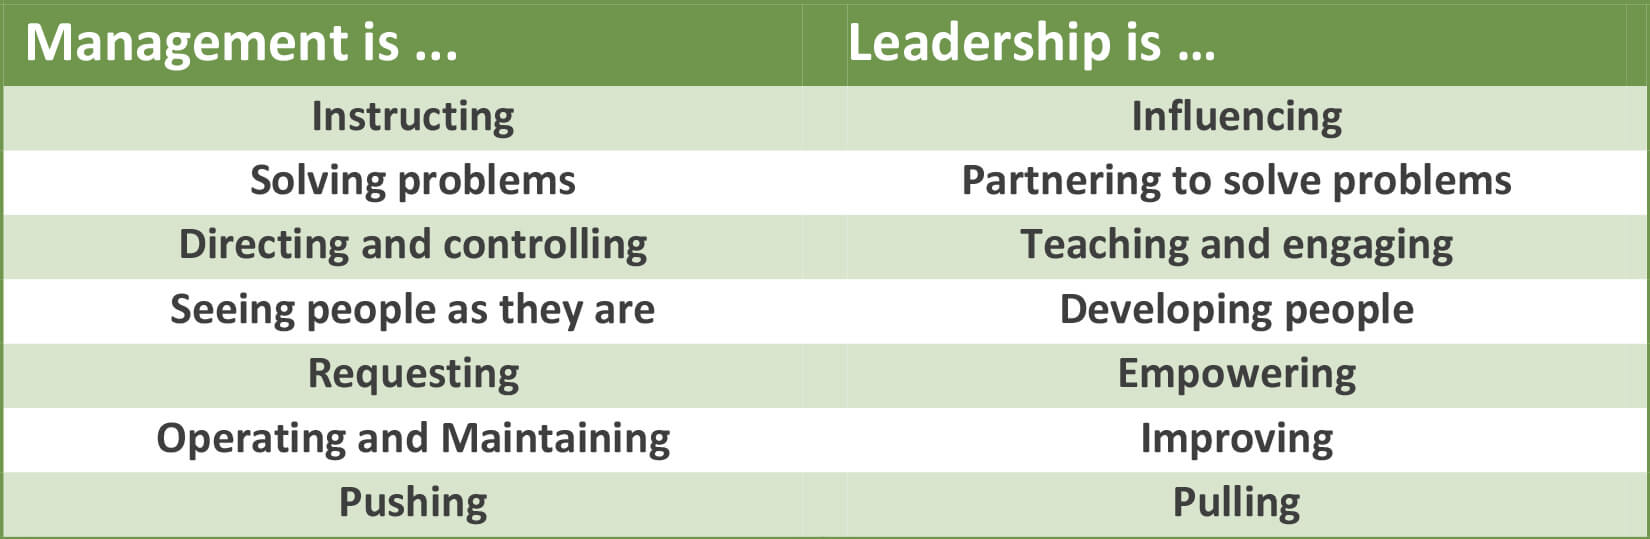 leadership- Bad manager behavior